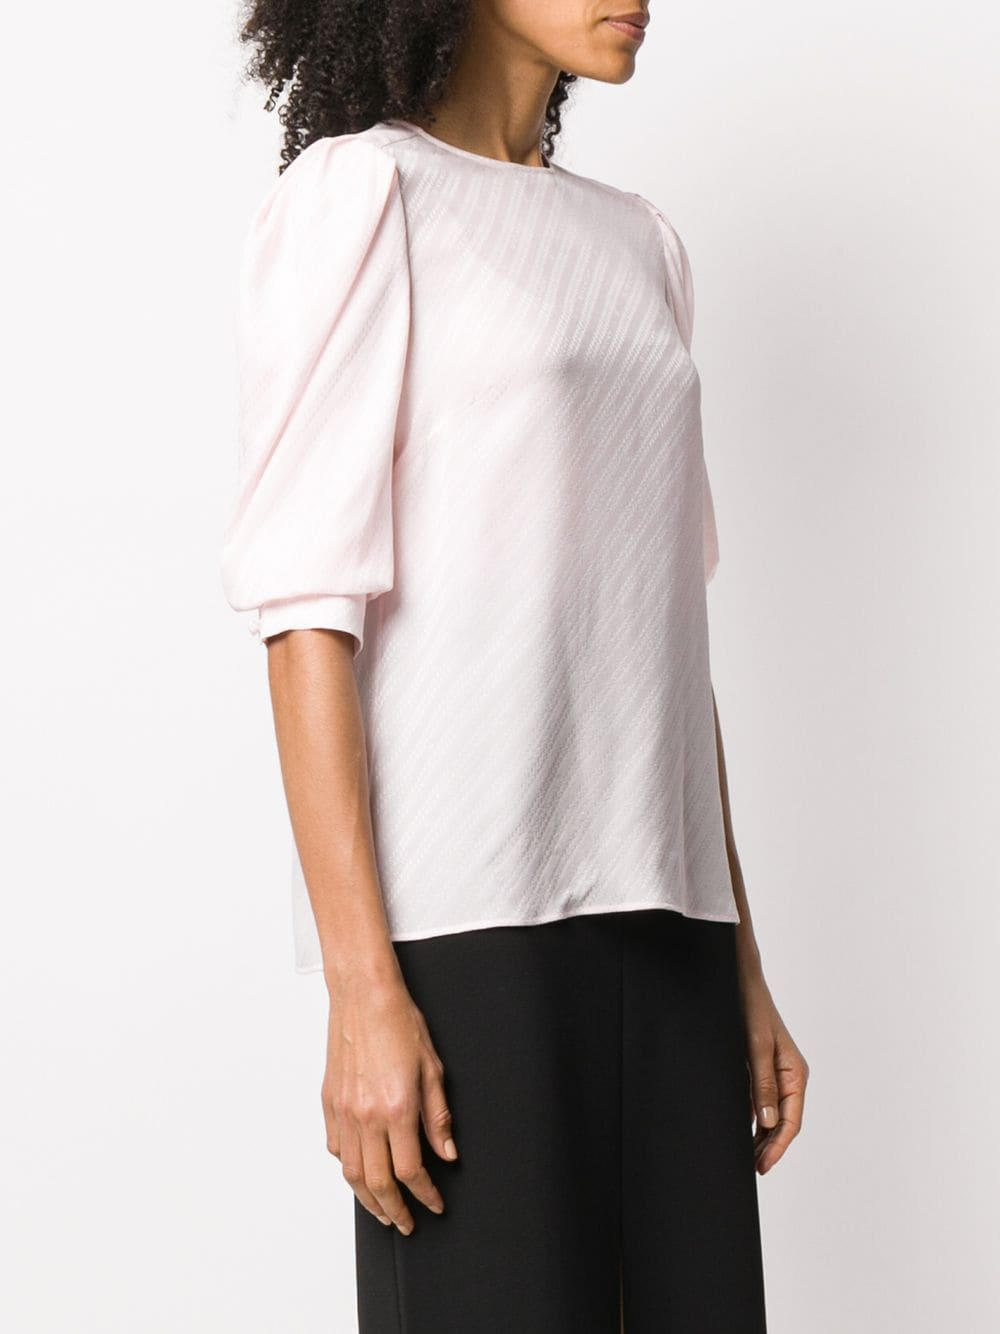 GIVENCHY Top GIVENCHY | Top | BW60NT12JB272